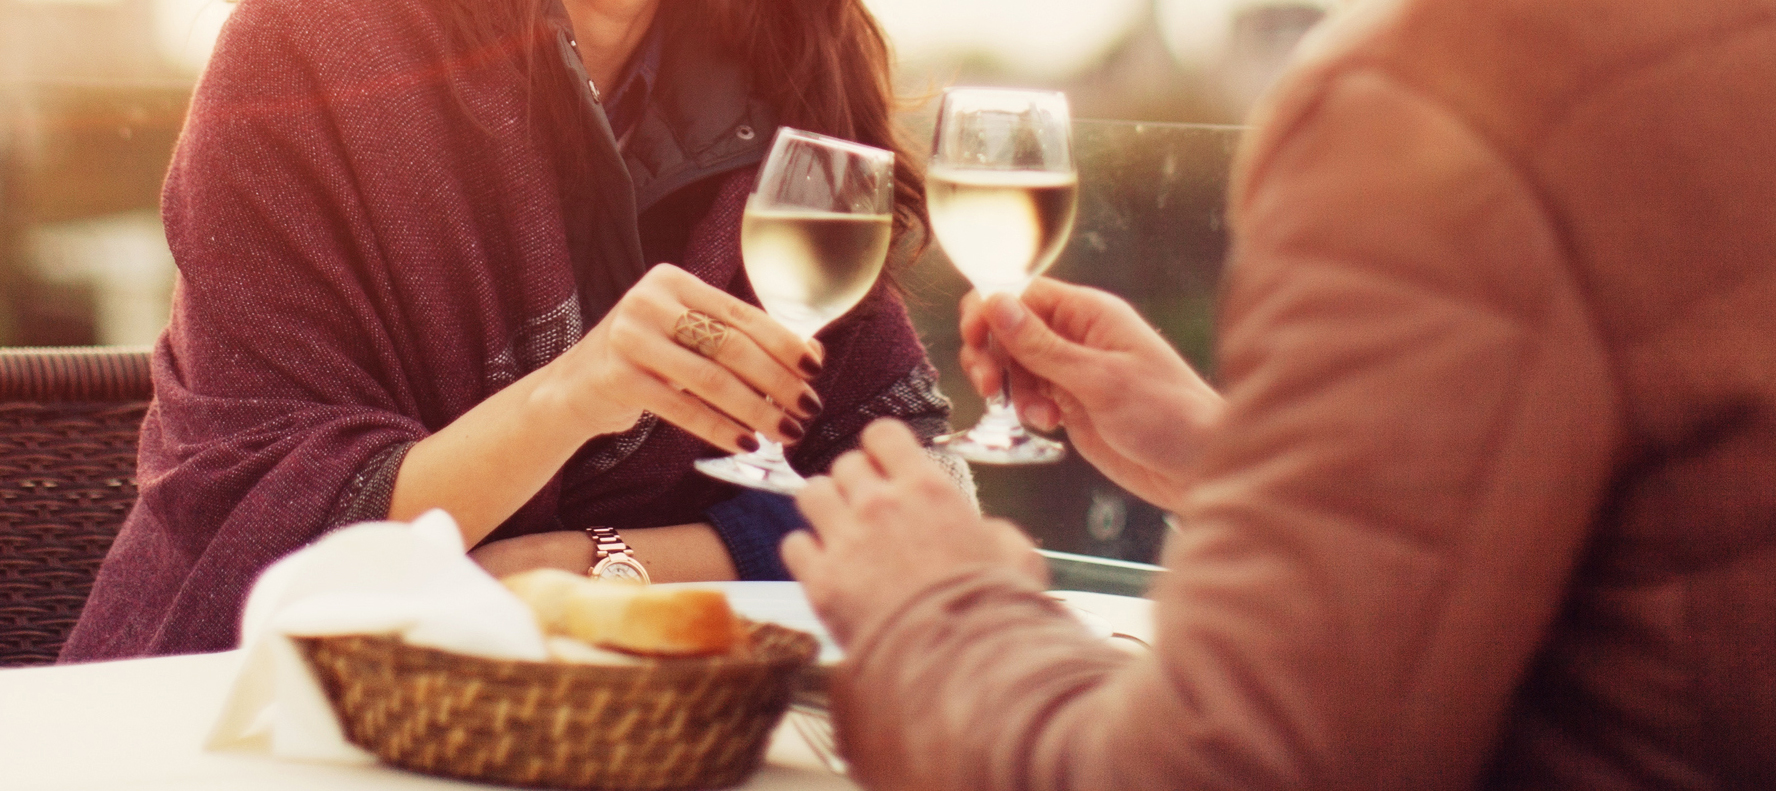 This Is What You Should Eat and Drink to Score a Second Date, According to Science